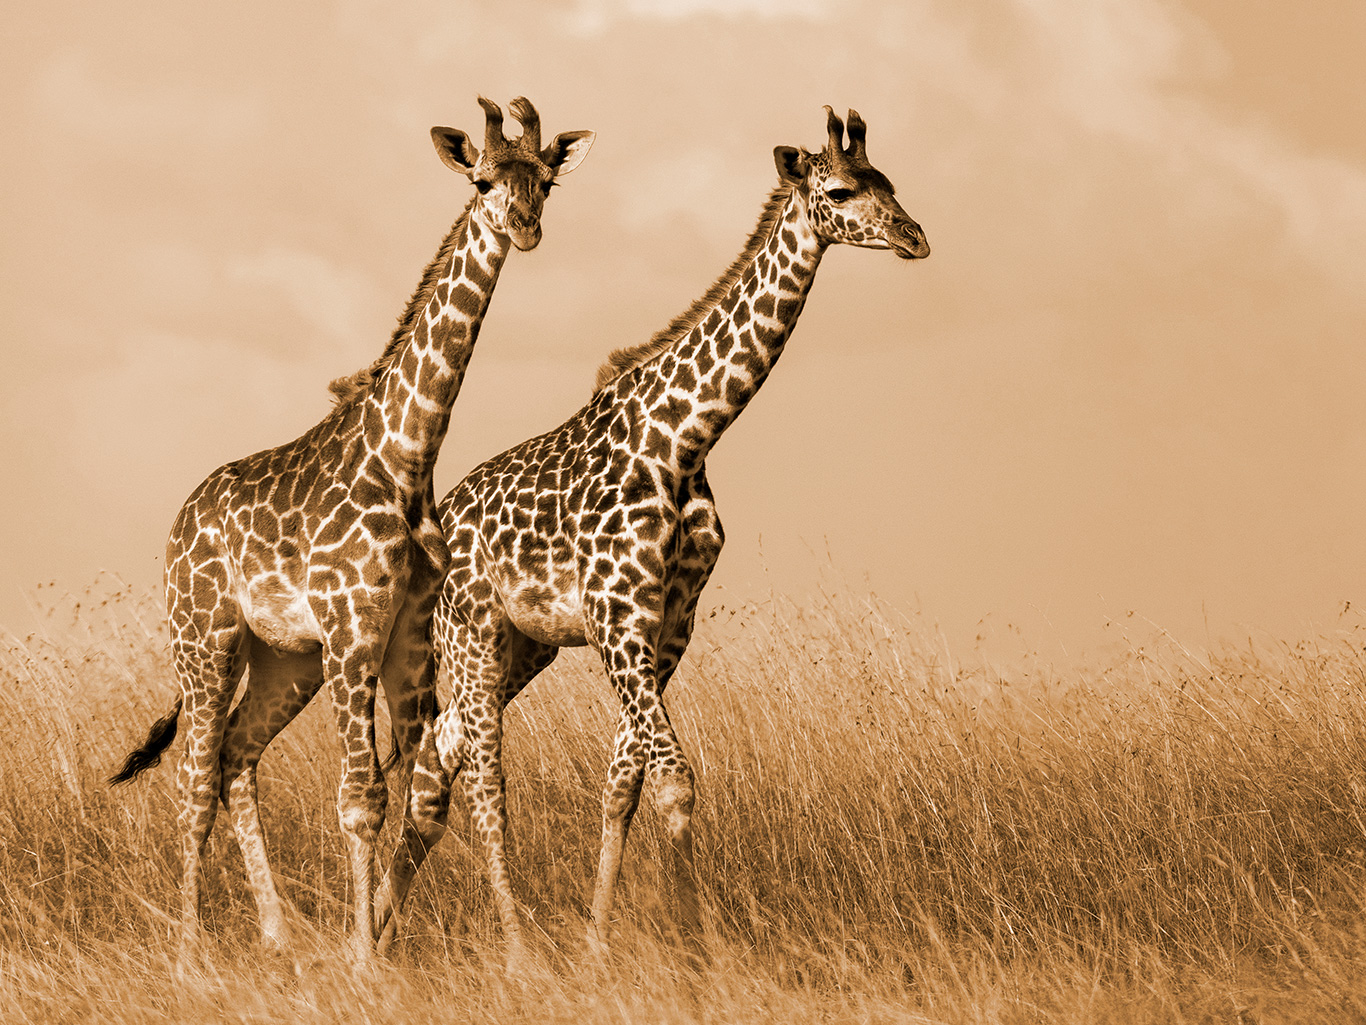 WICKED SNARES kill giraffes for food and tourist trinkets! 5